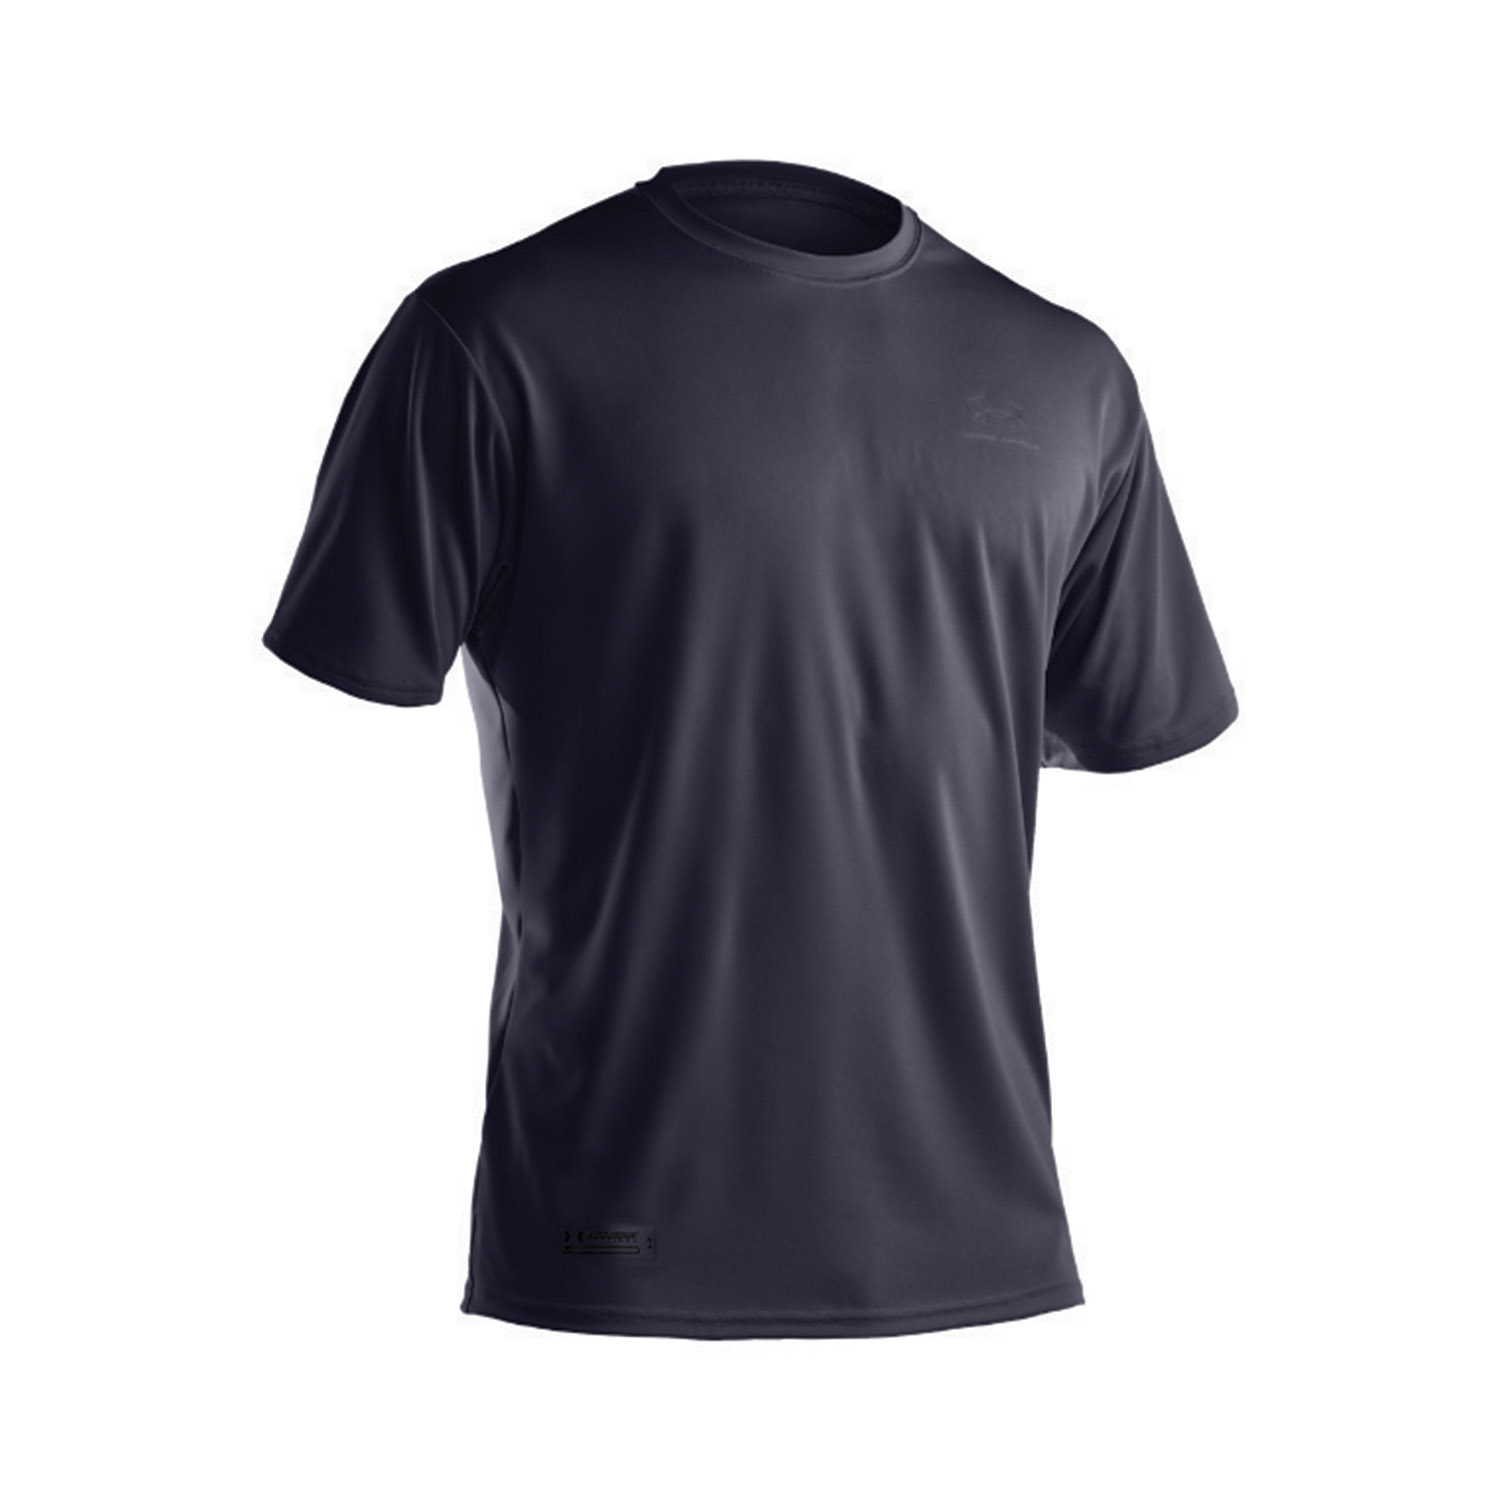 UA HEATGEAR TACTICAL S/S T-SHIRT